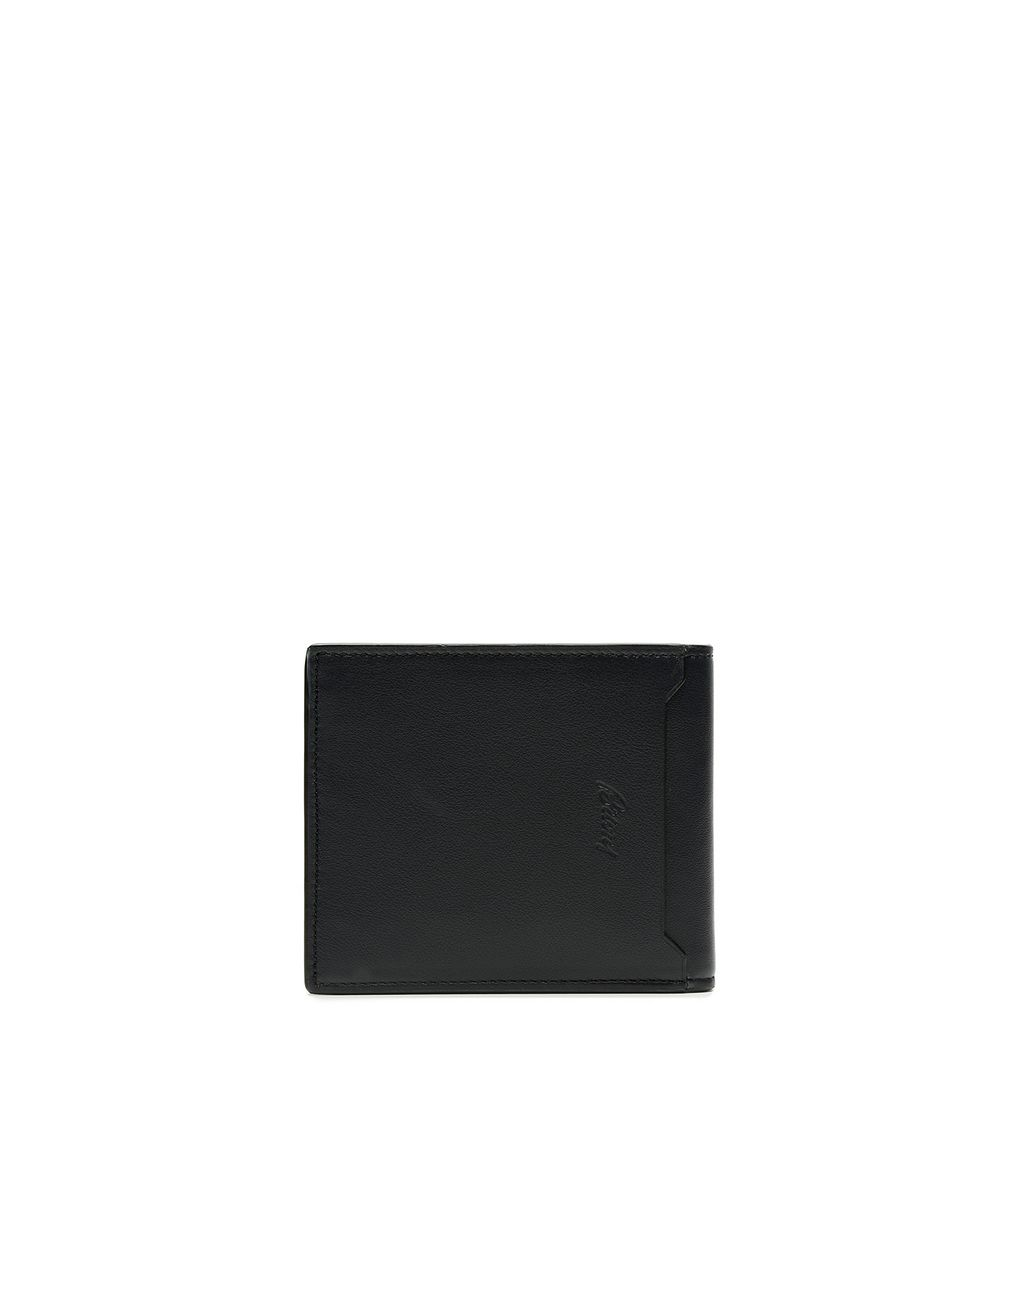 BRIONI Blue and Black Slim Calfskin Wallet Leather Goods [*** pickupInStoreShippingNotGuaranteed_info ***] d